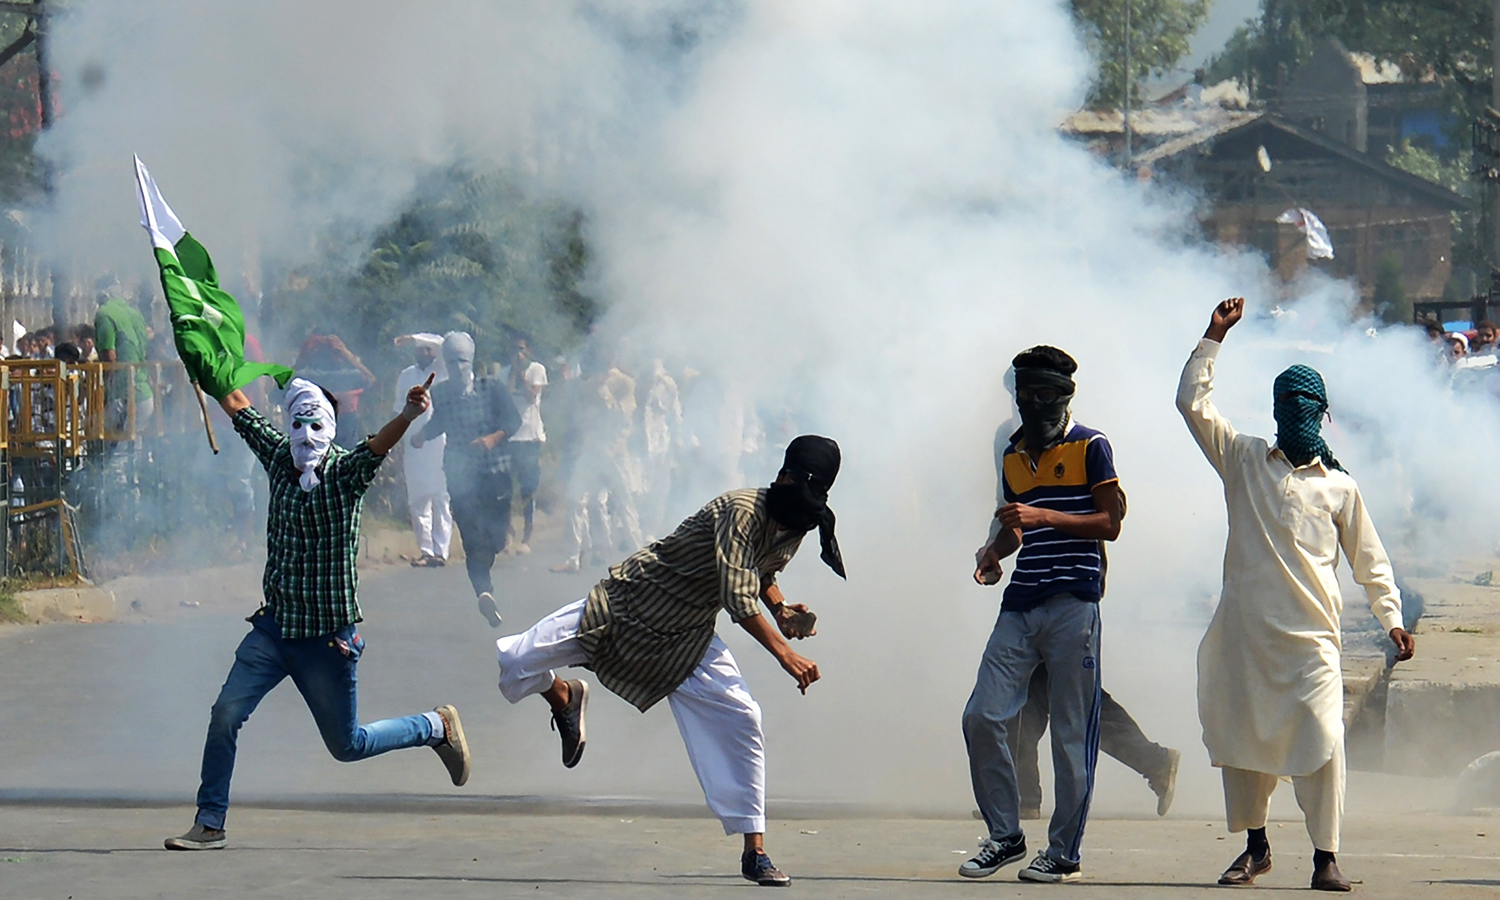 UN offers to send fact-finding missions to Kashmir